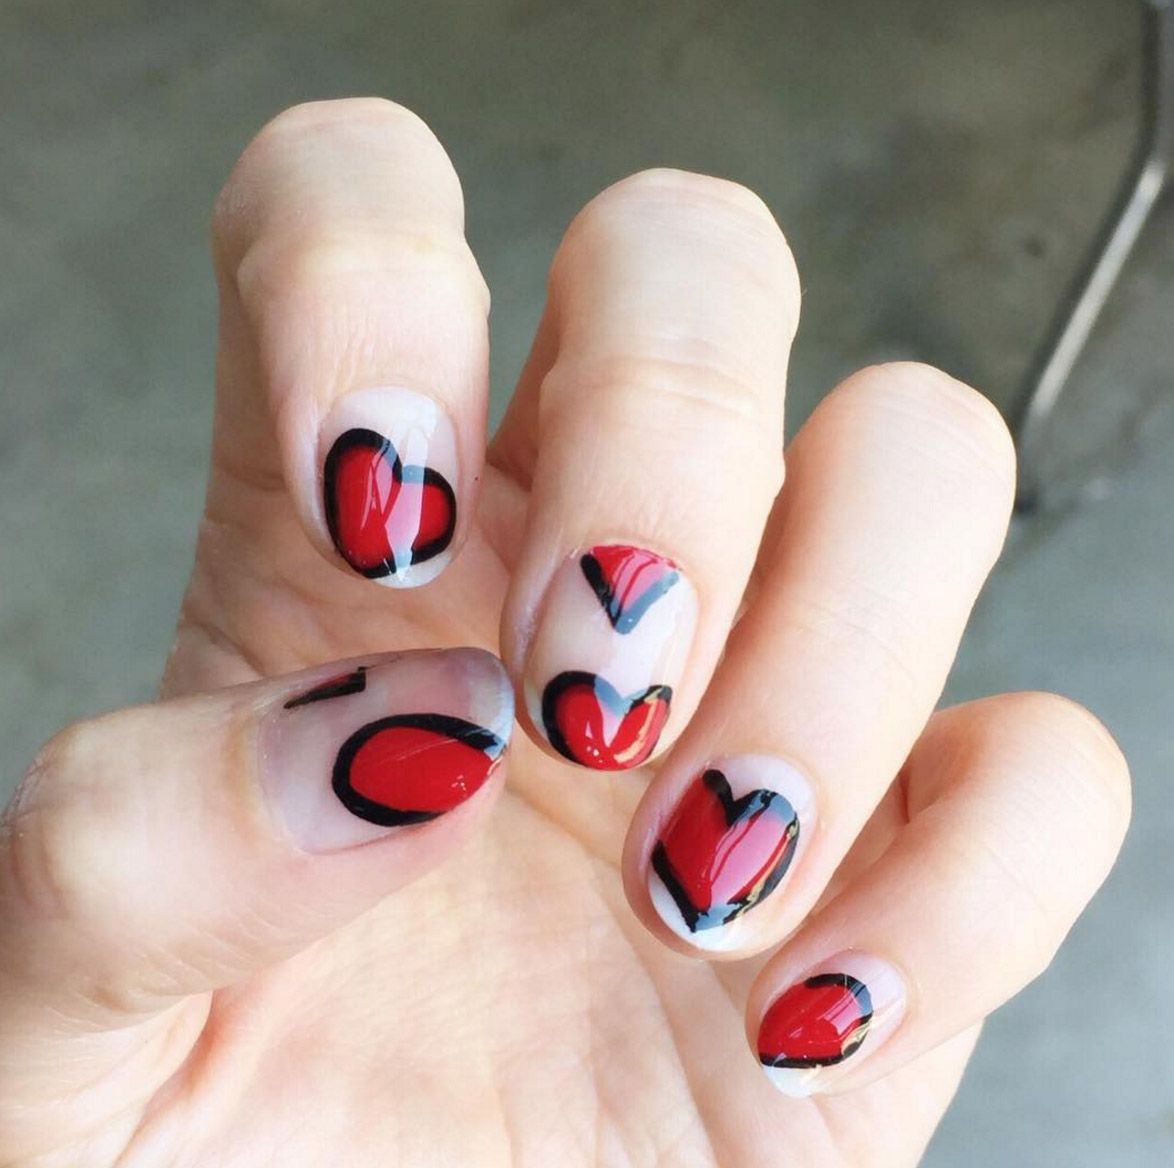 Nail art designs with hearts best nails art ideas prinsesfo Choice Image